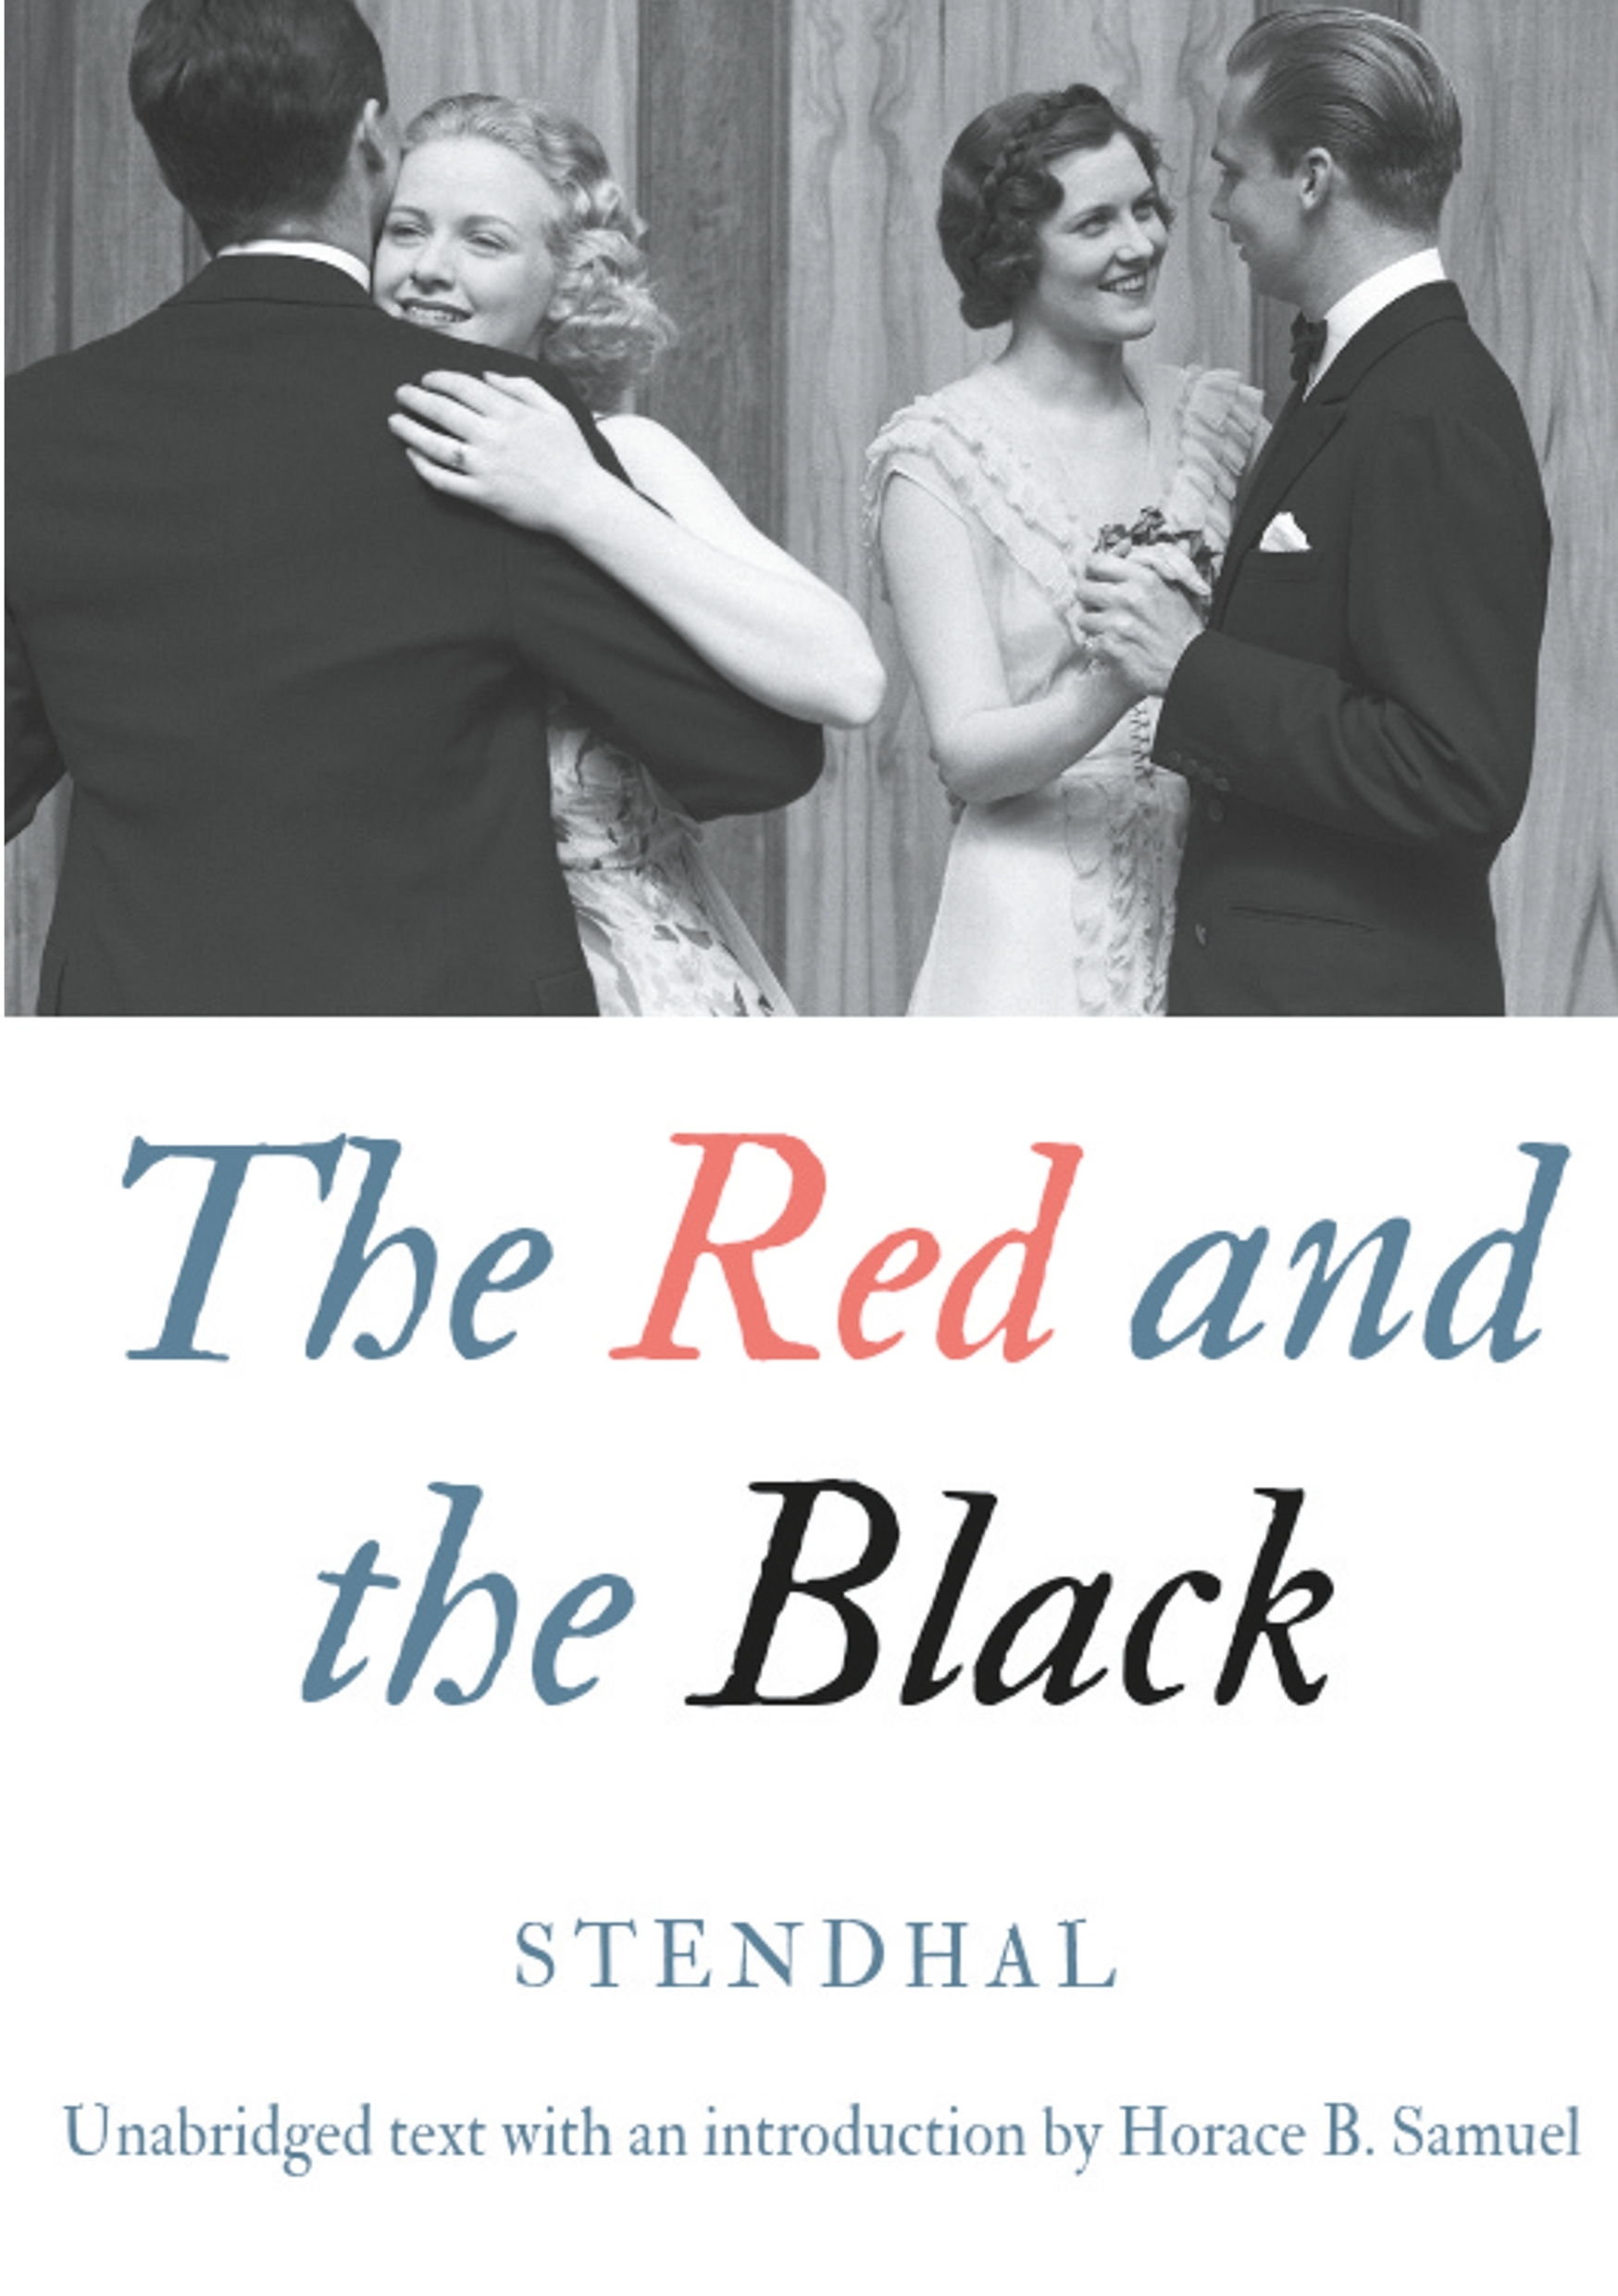 THE RED AND THE BLACK - UNABRIDGED TEXT WITH AN INTRODUCTION BY HORACE B. SAMUEL